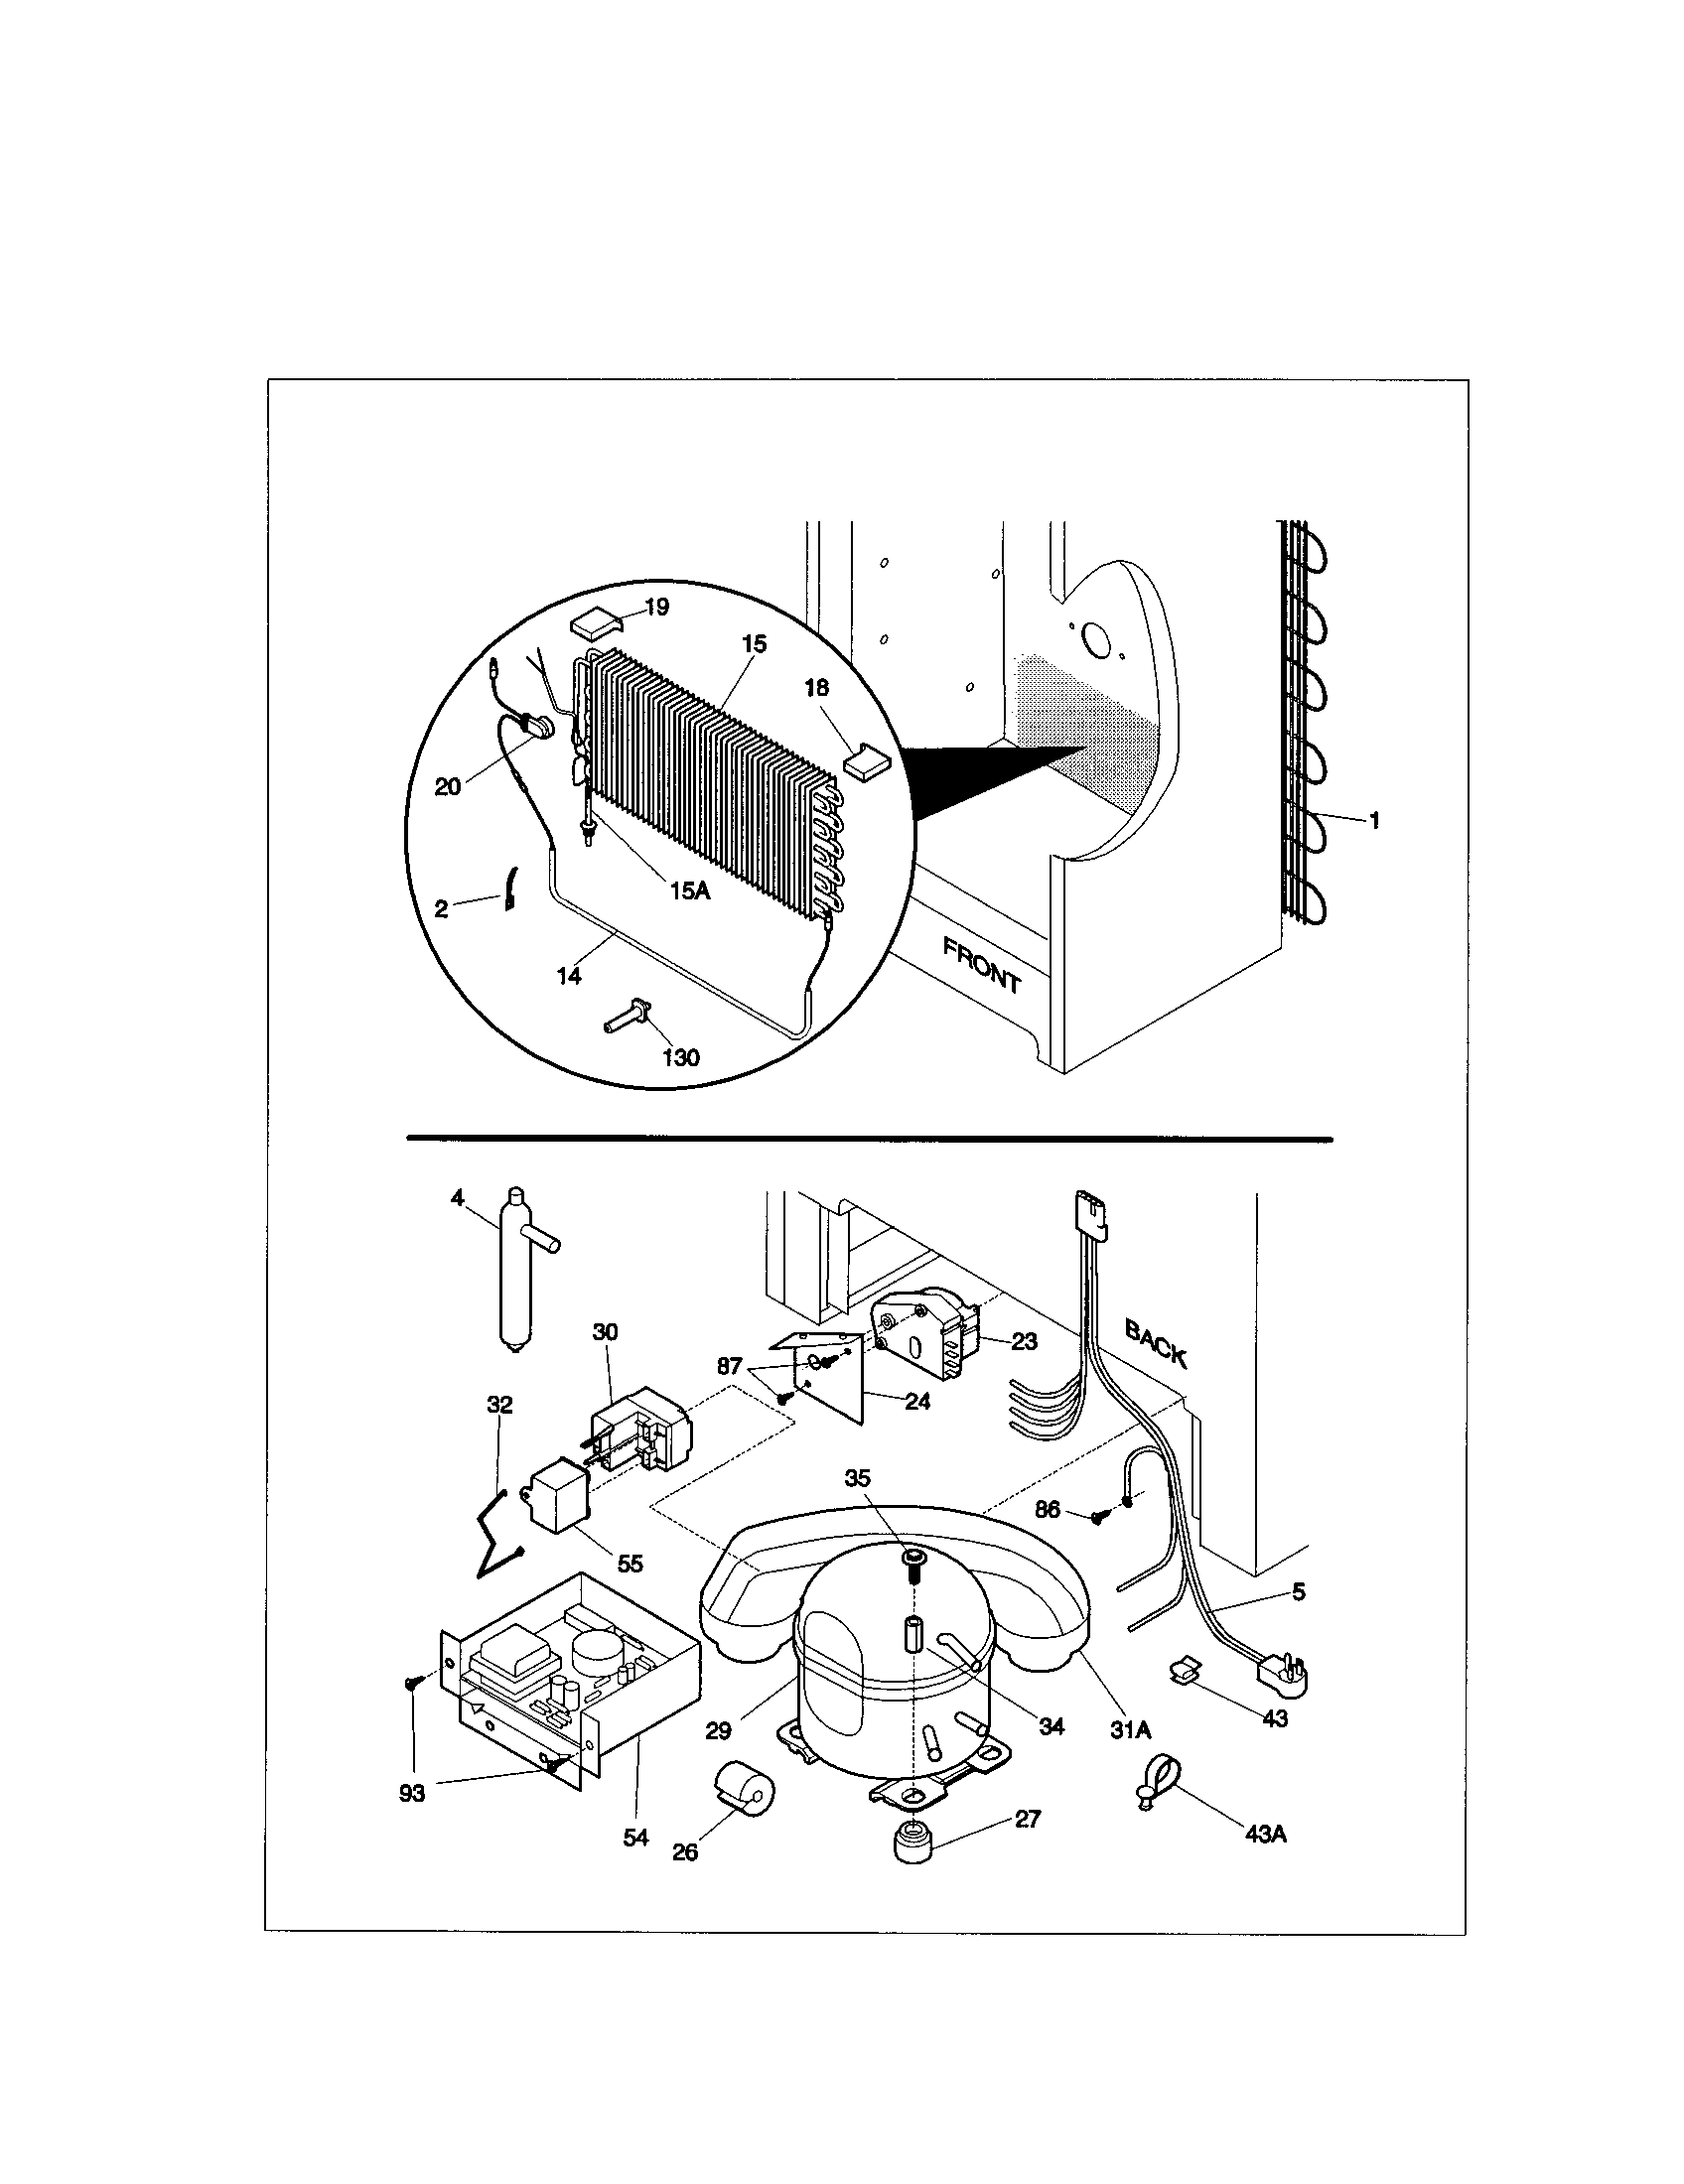 Kenmore 25321041100 system diagram